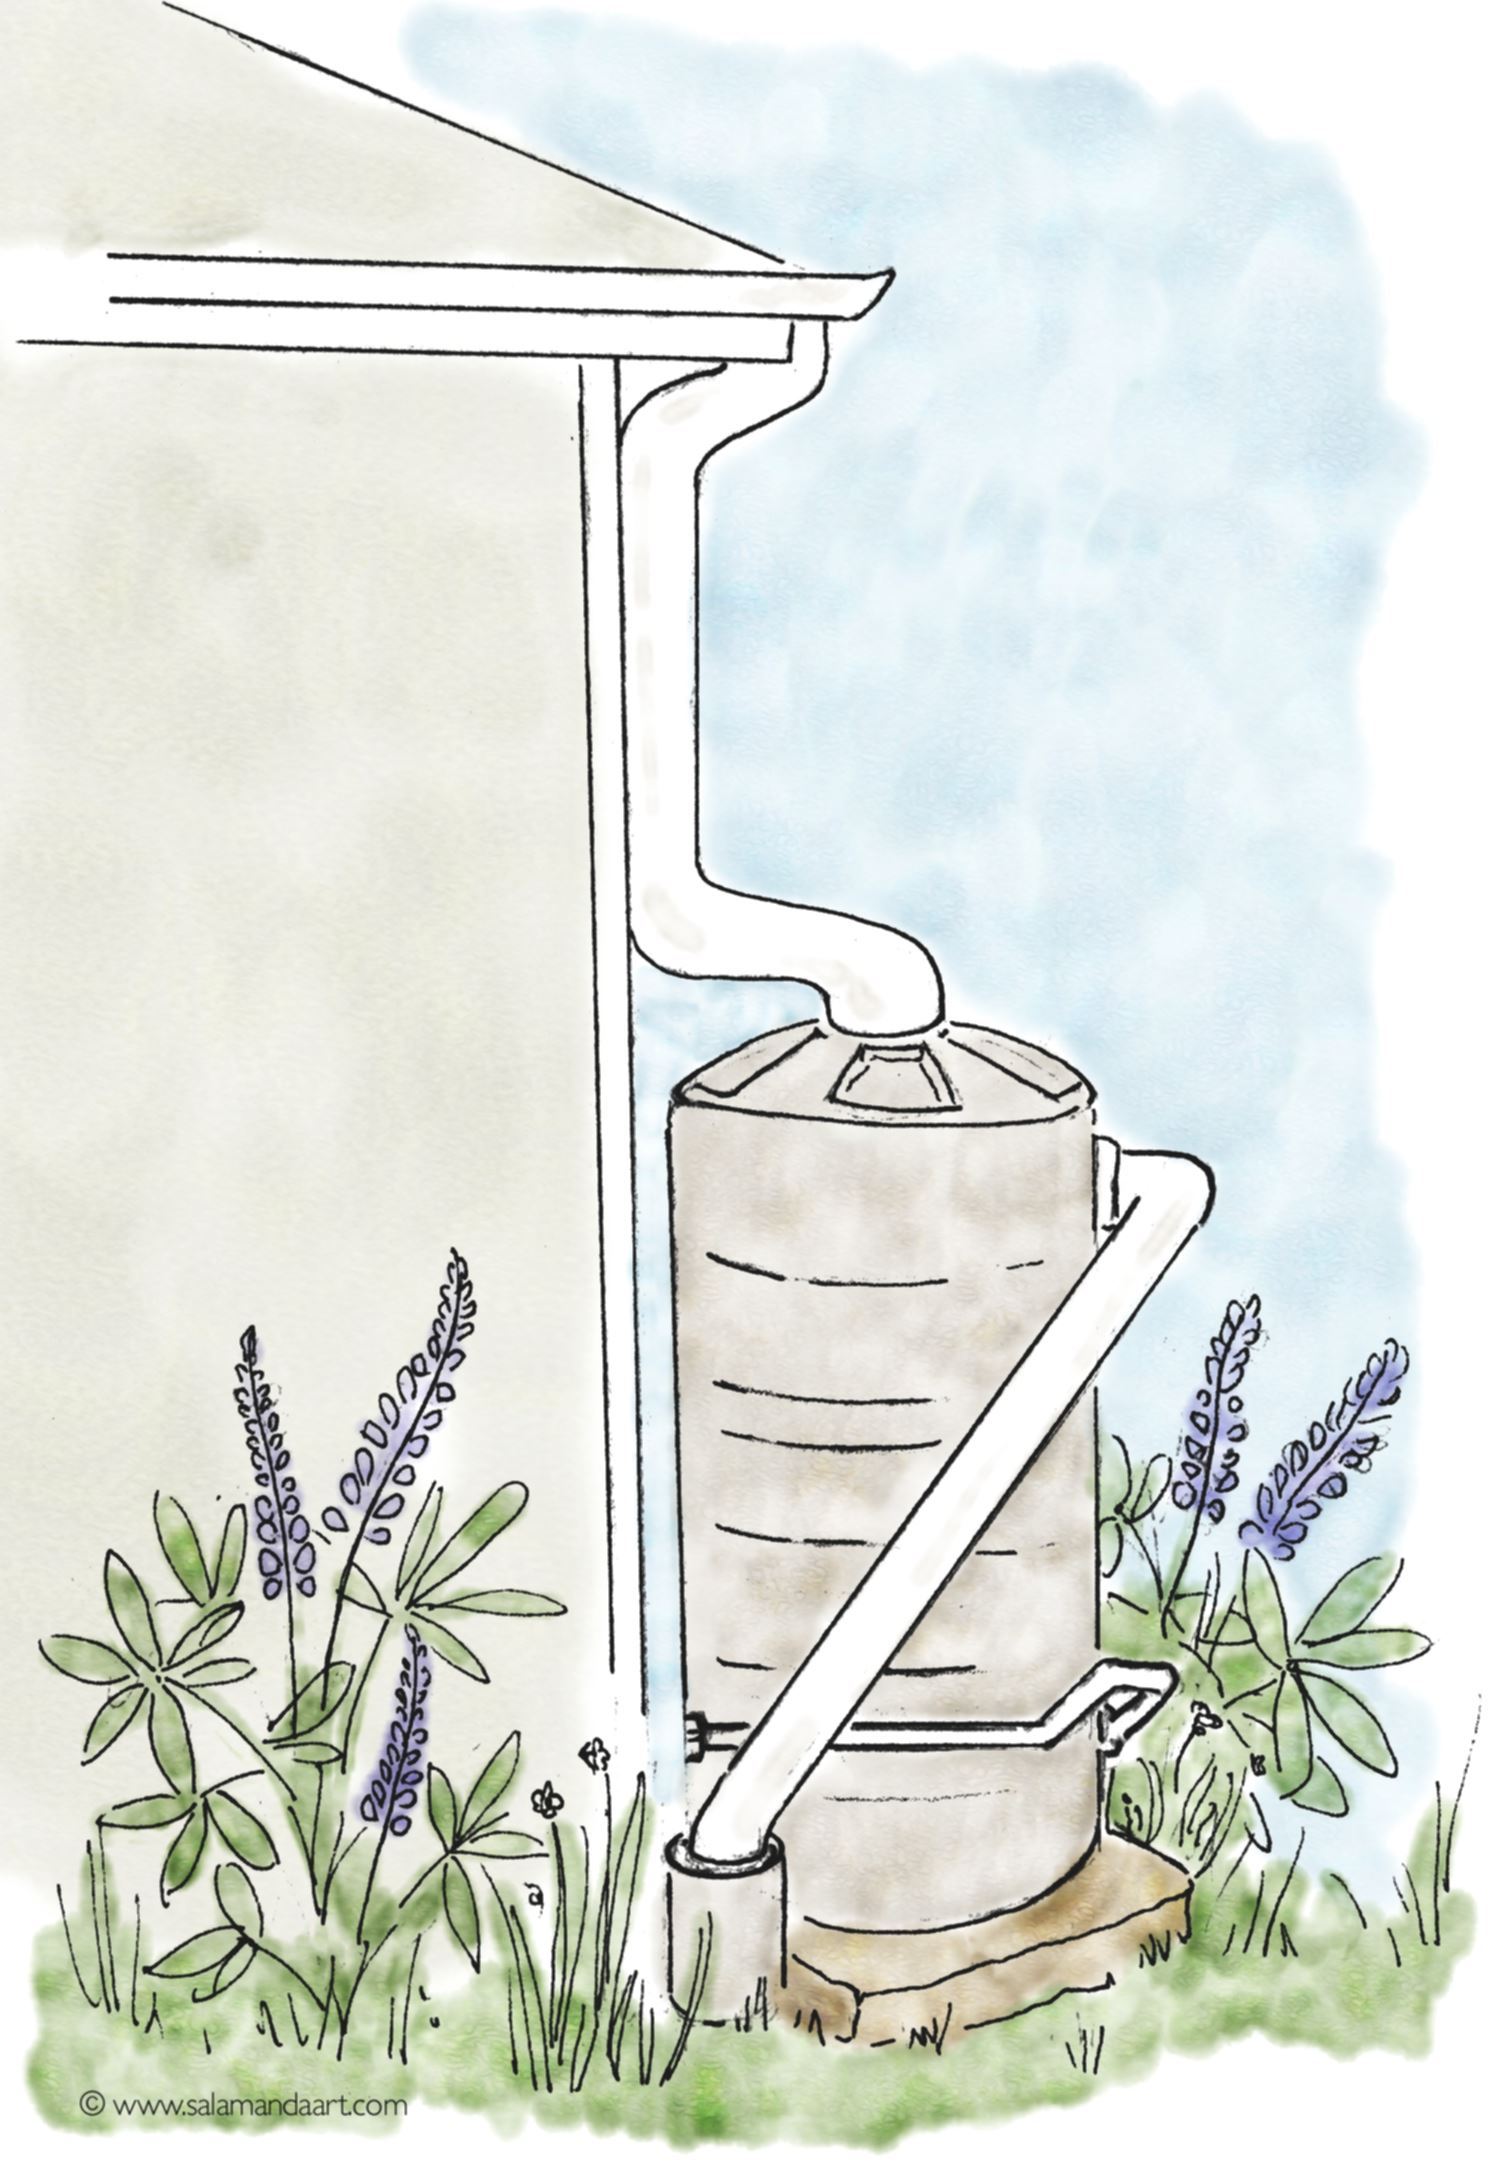 rain barrel drawing